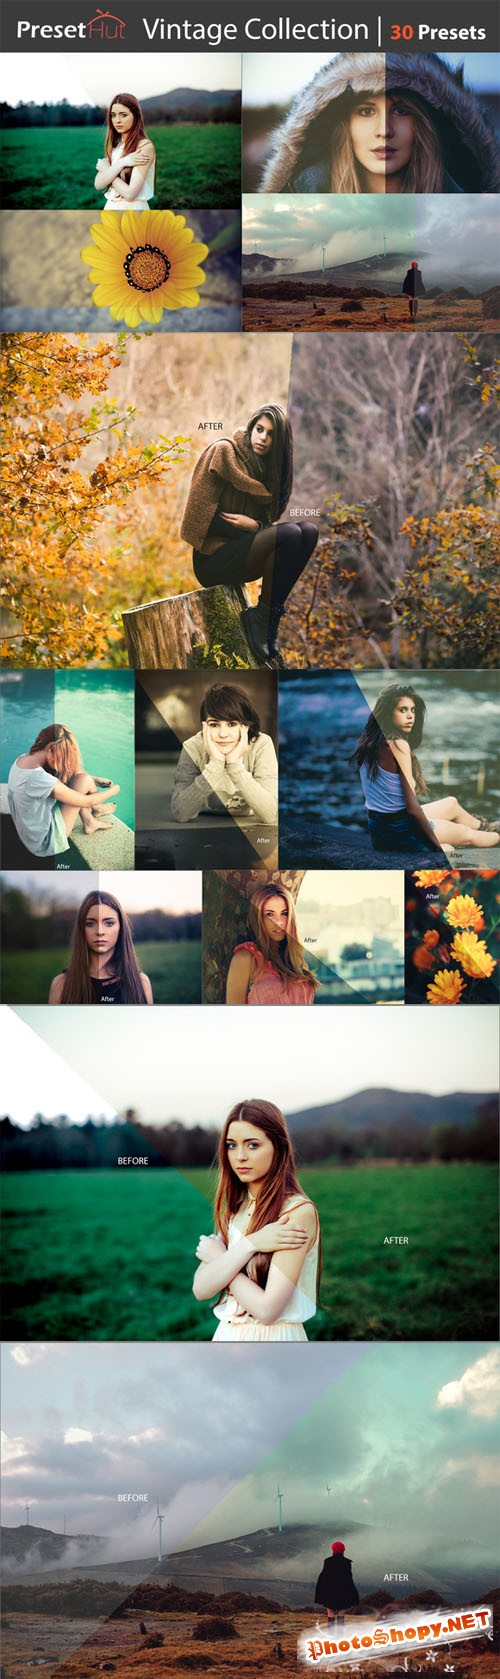 LR Vintage Collection - Creativemarket 53852